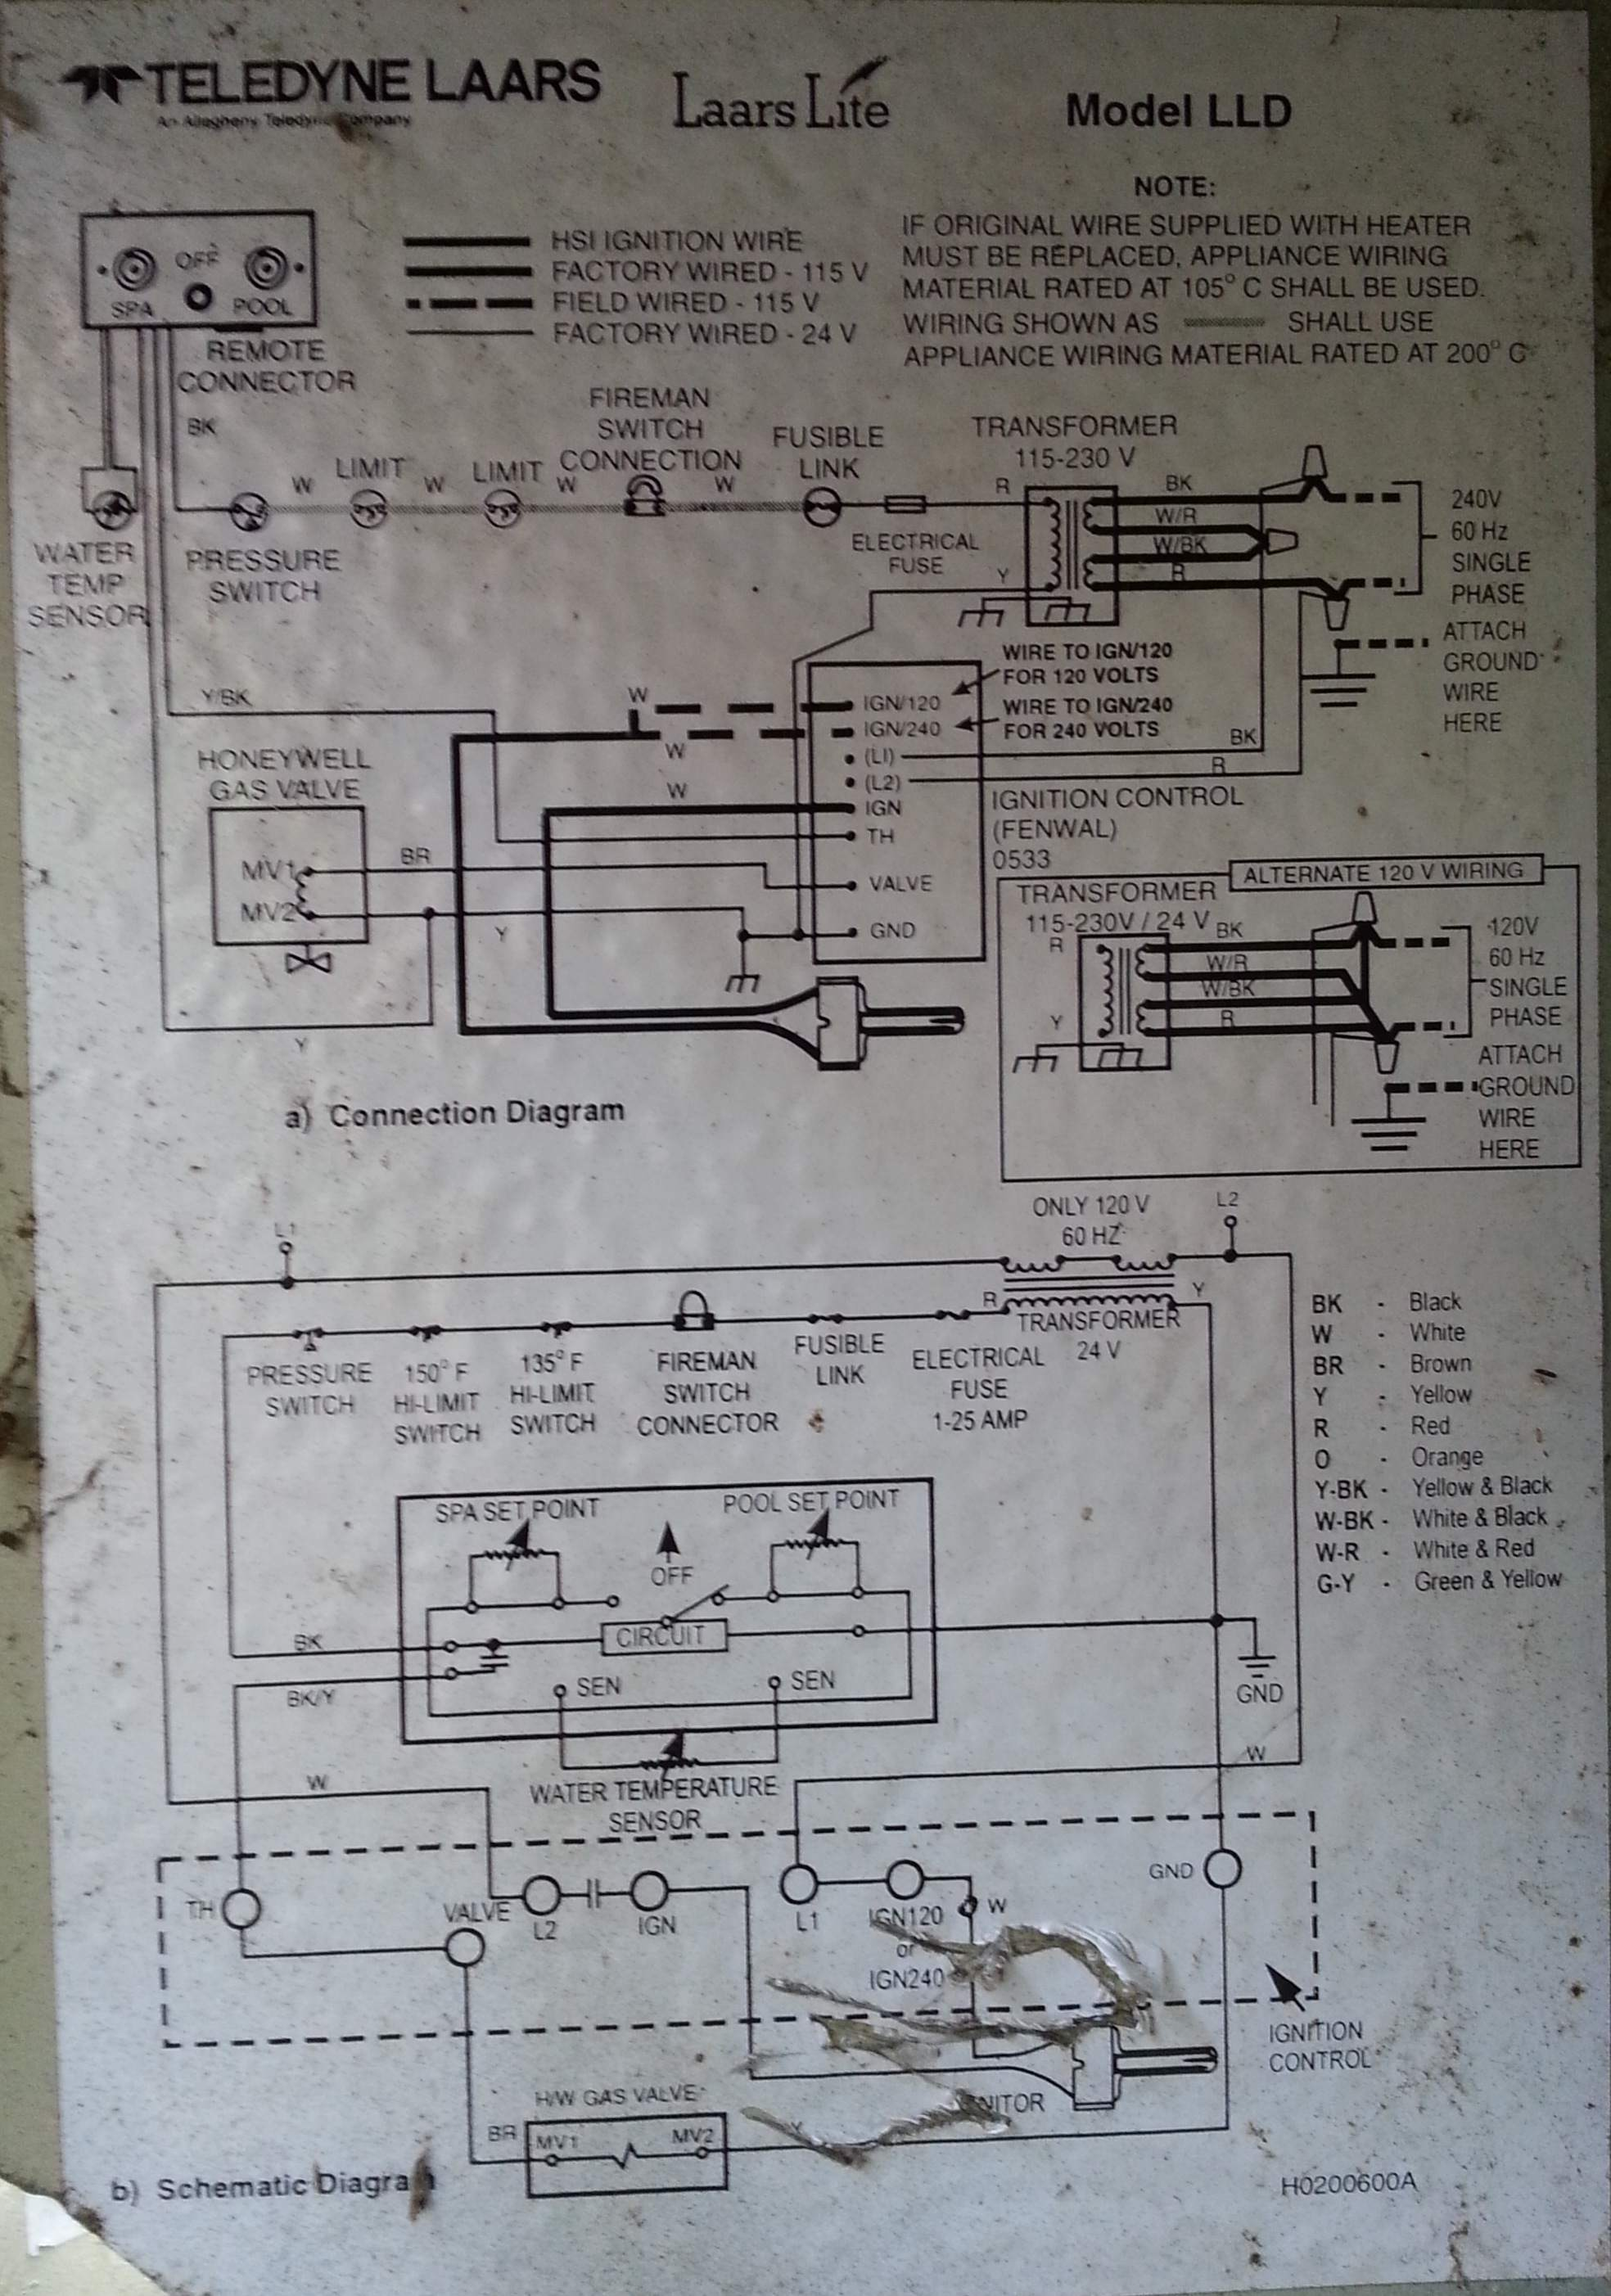 [DIAGRAM_09CH]  Diagram 🥇 Laars Pool Heater 110 Volt Wiring Diagram wiring diagram | Laars Pool Heater 110 Volt Wiring Diagram |  | ESURV.IT